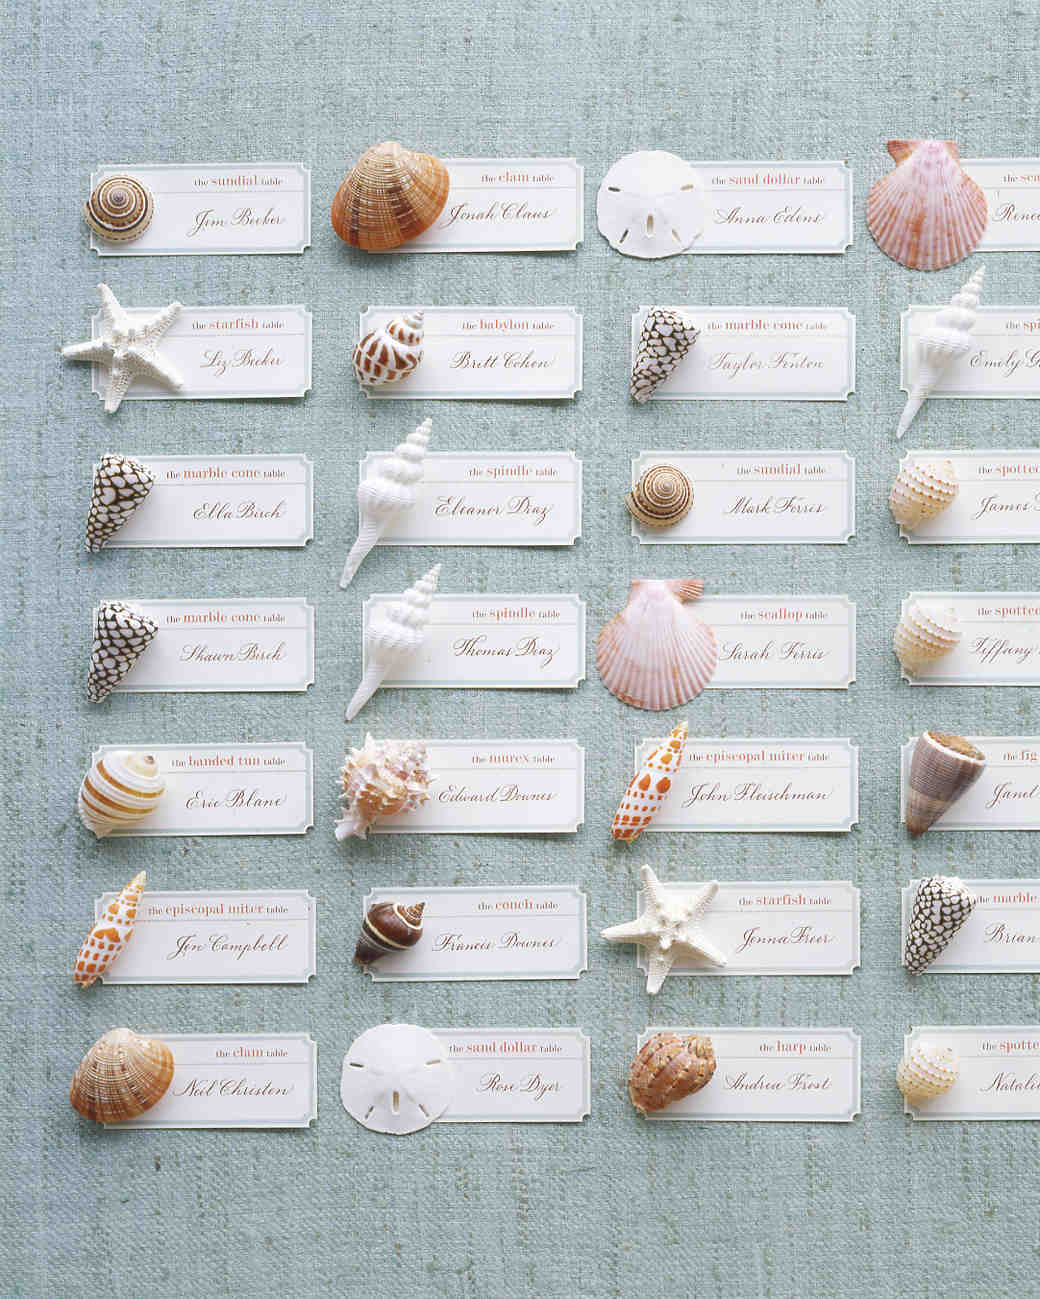 diy-beach-wedding-ideas-seashell-escort-cards-su05-0615.jpg